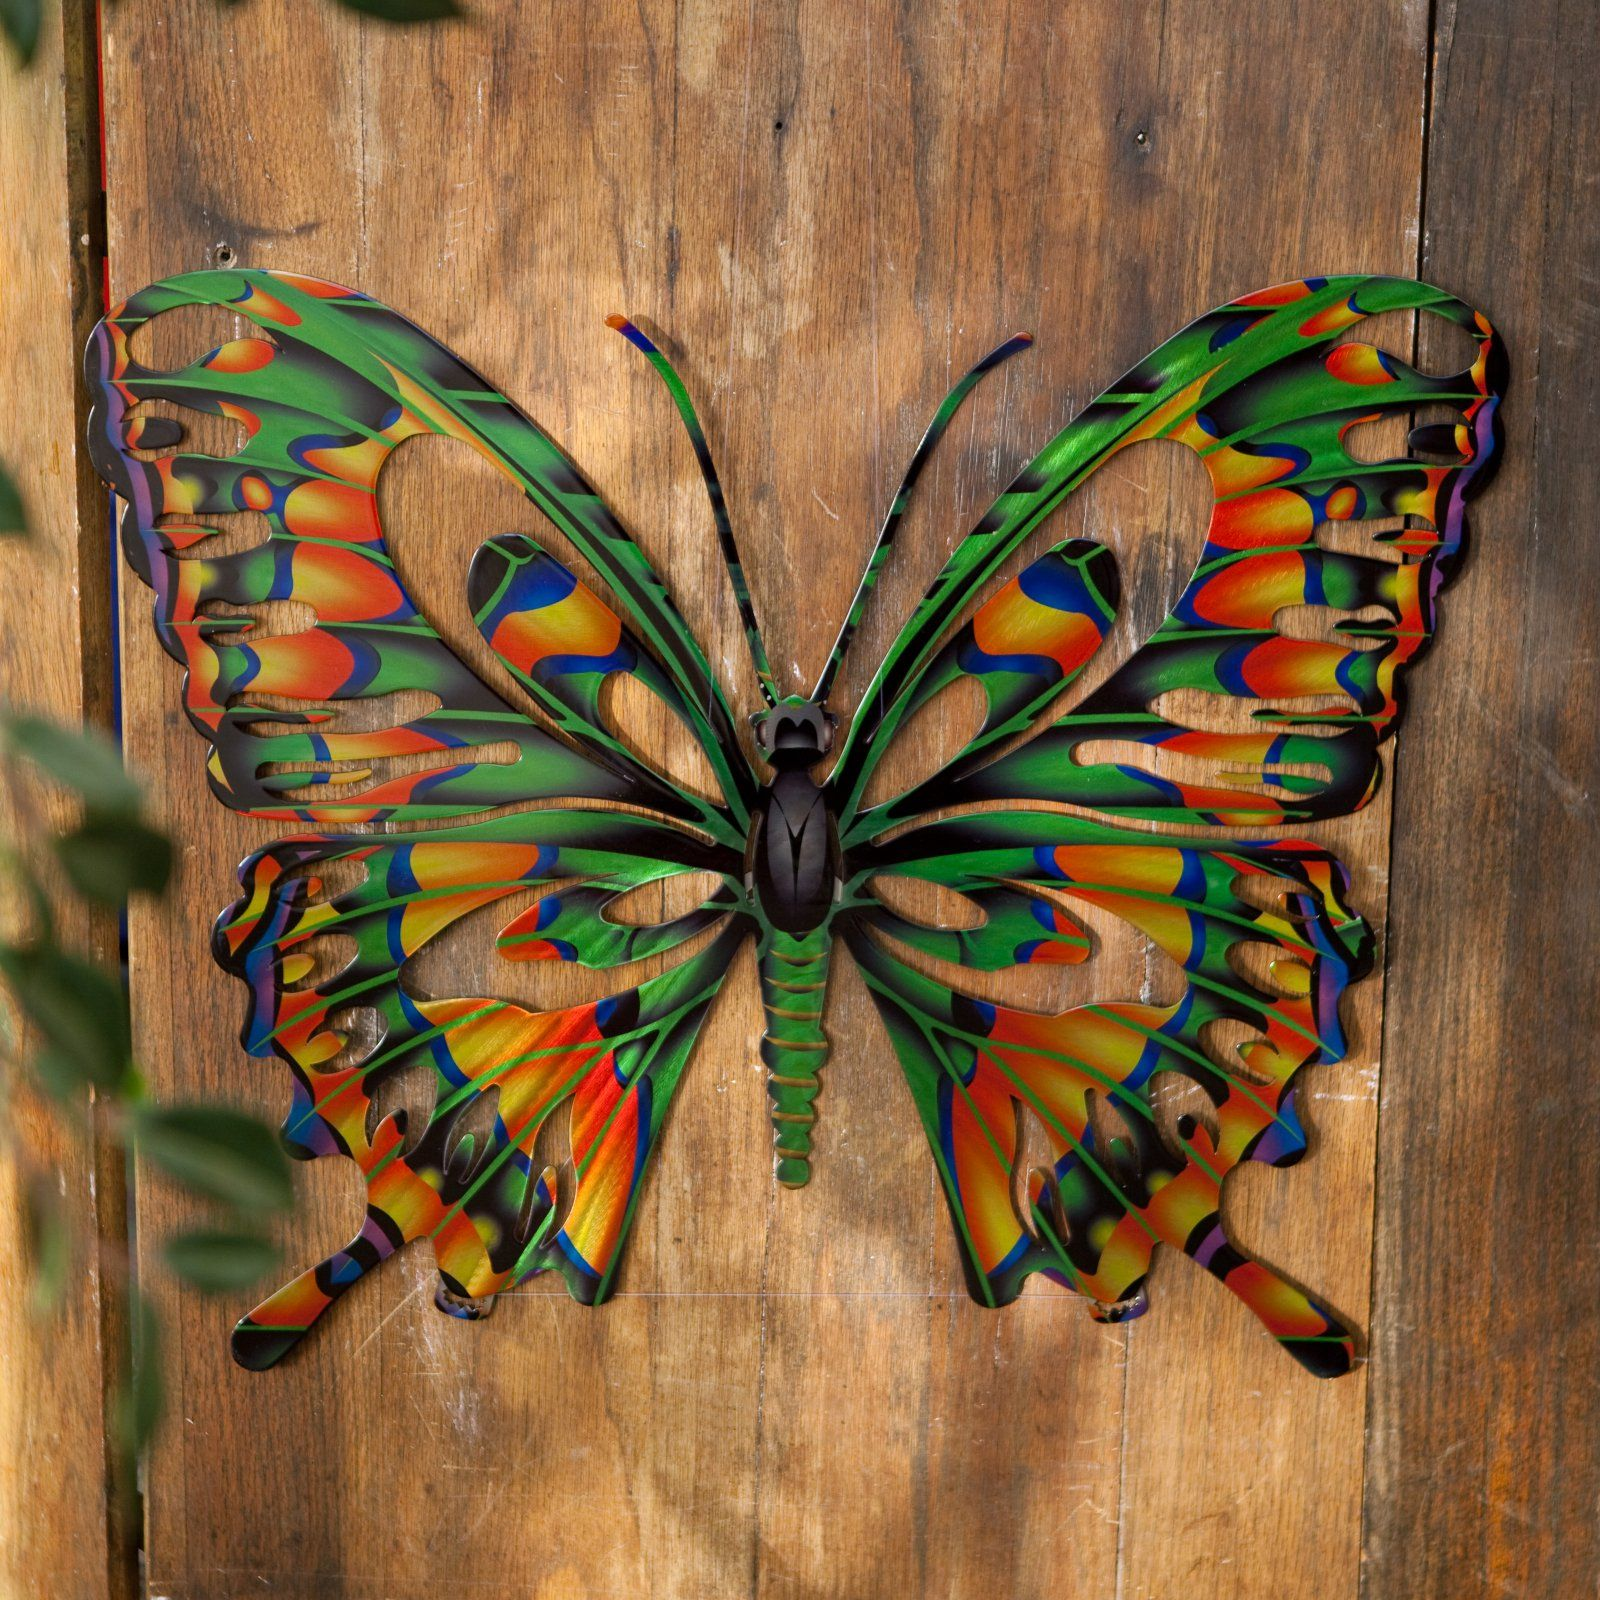 3d Butterfly Multi Metal Wall Art By Next Innovations Walmart Com In 2020 3d Butterfly Wall Art Outdoor Metal Wall Art Outdoor Wall Art